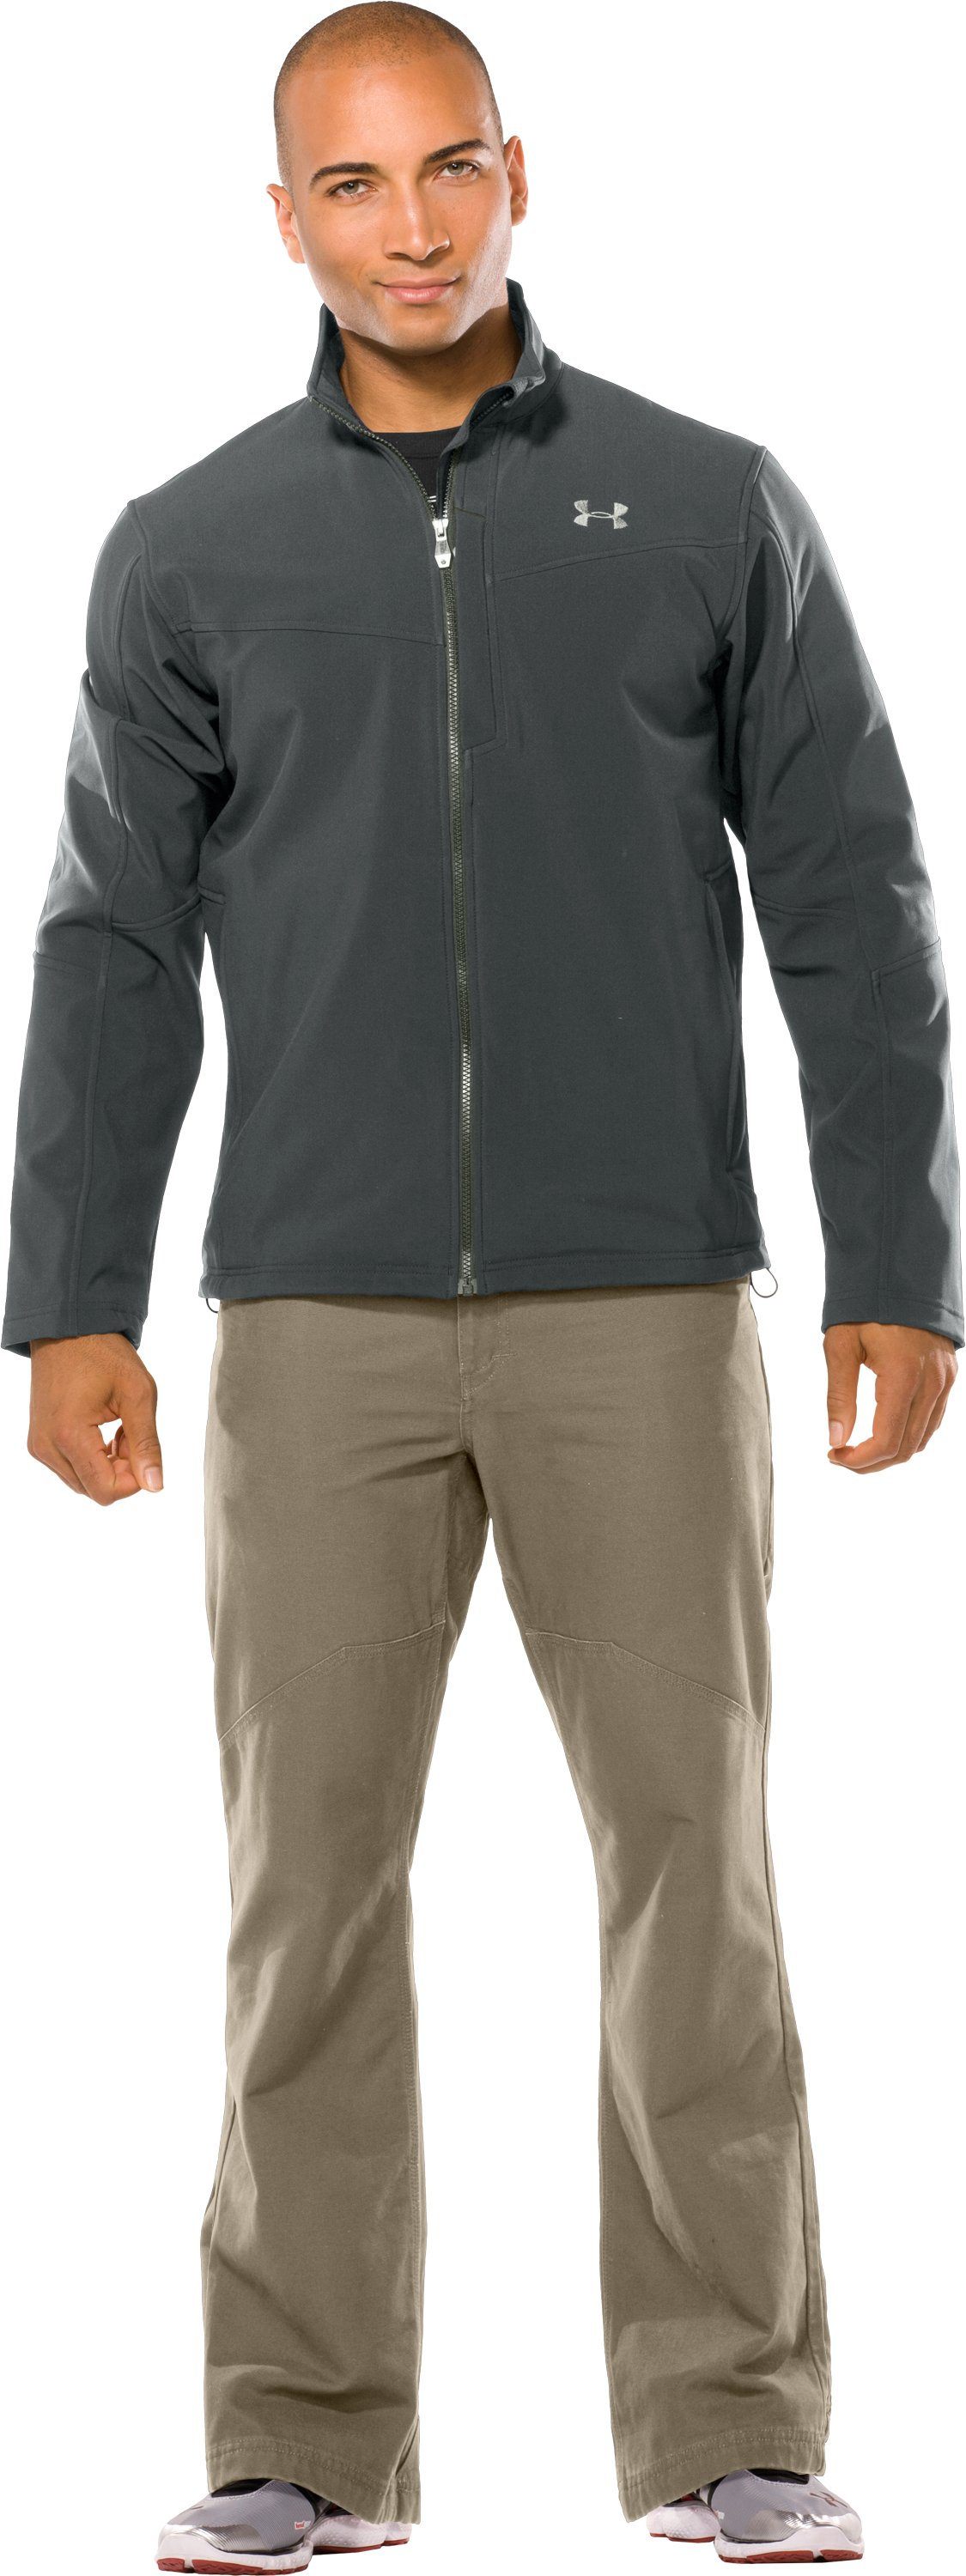 Men's Skyscraper Softshell Jacket, Battleship